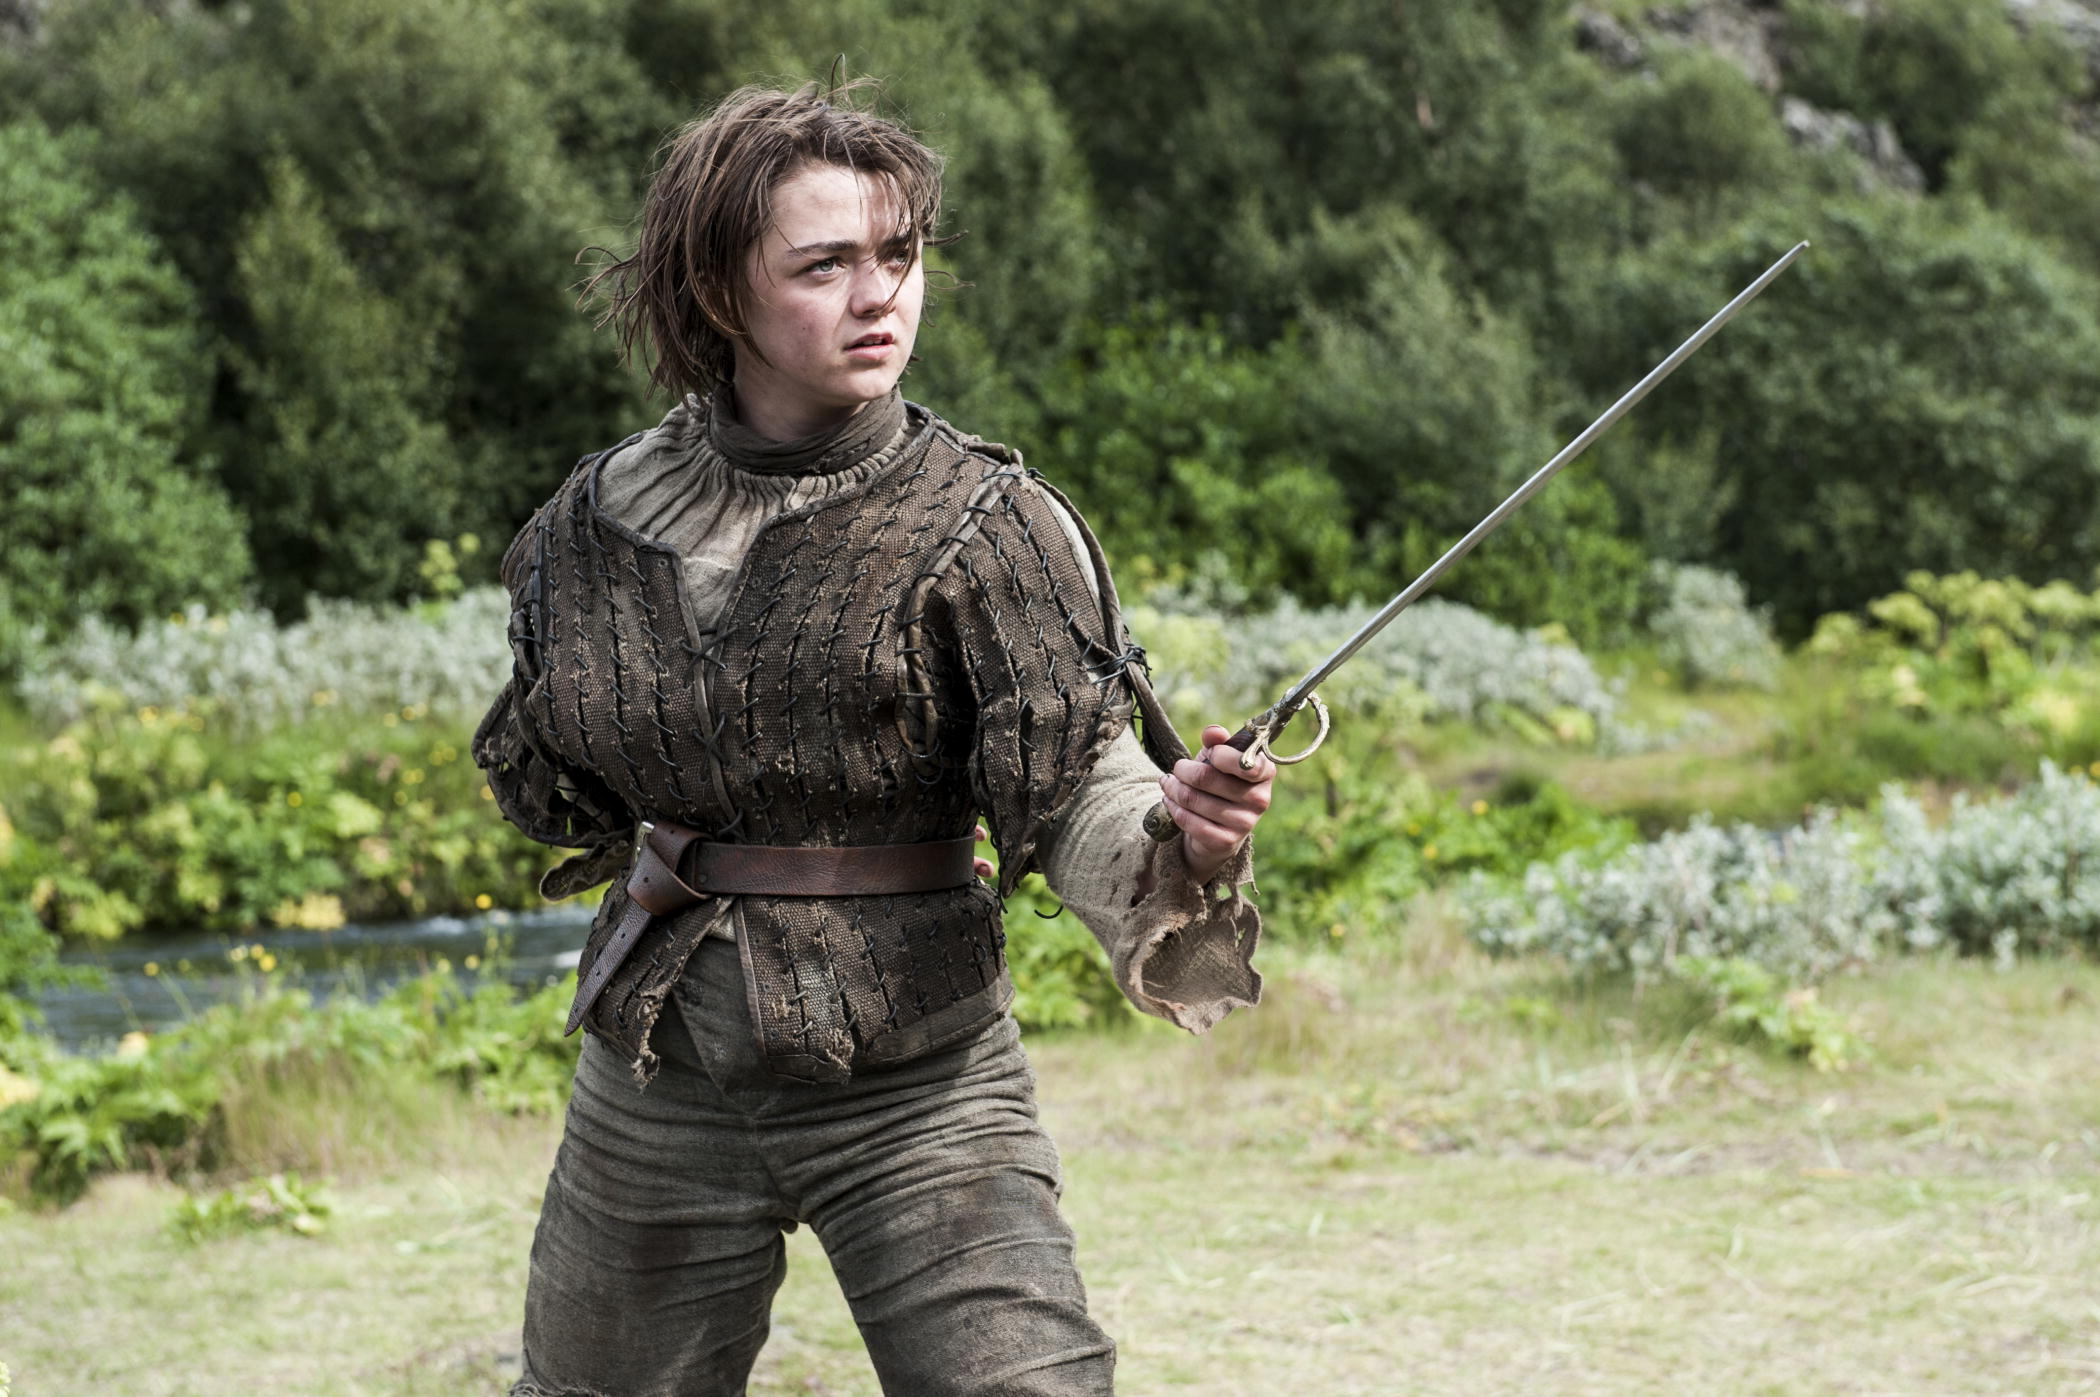 Game of Thrones' Maisie Williams in talks for The Last of Us movie